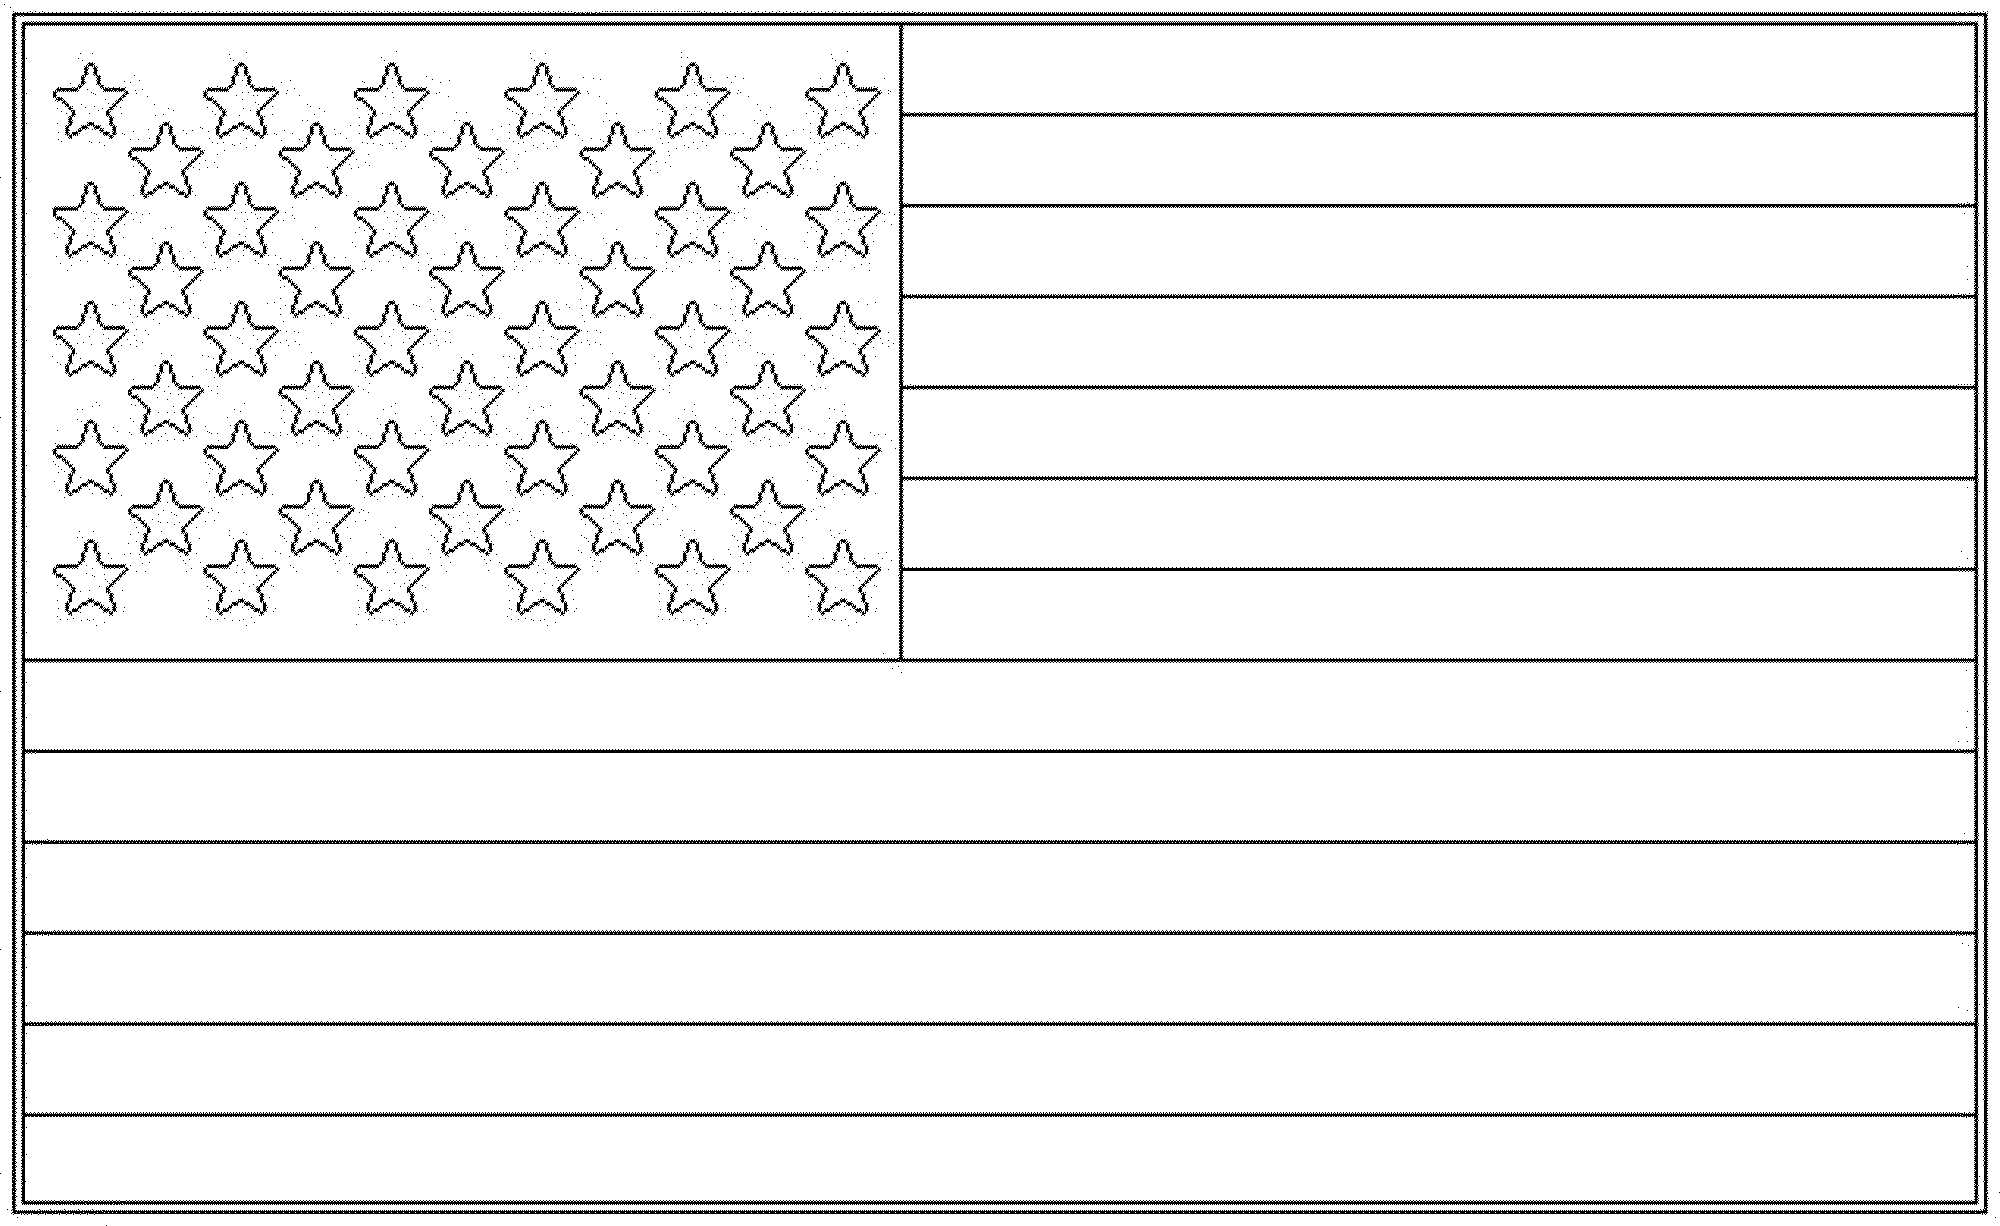 blank flag coloring page blank flag coloring page food ideas coloring flag blank page